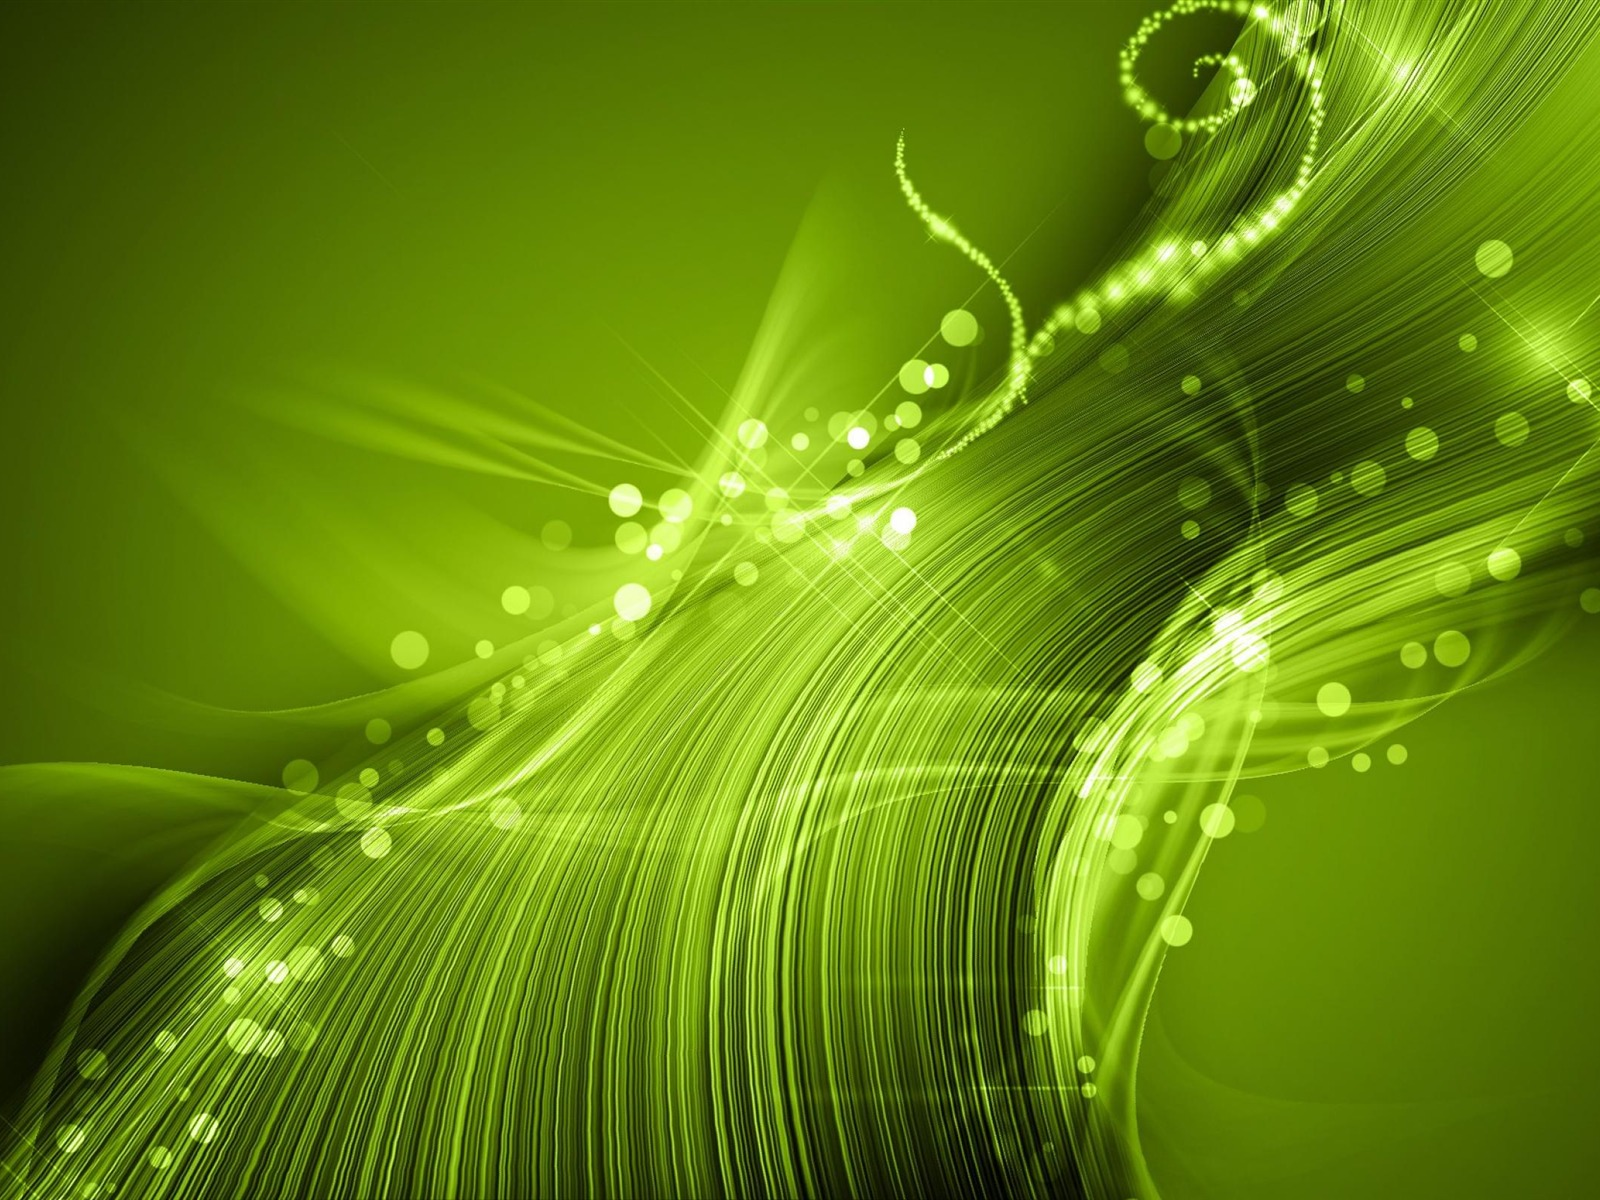 Design Green Lights Wave Star Abstract Art Wal